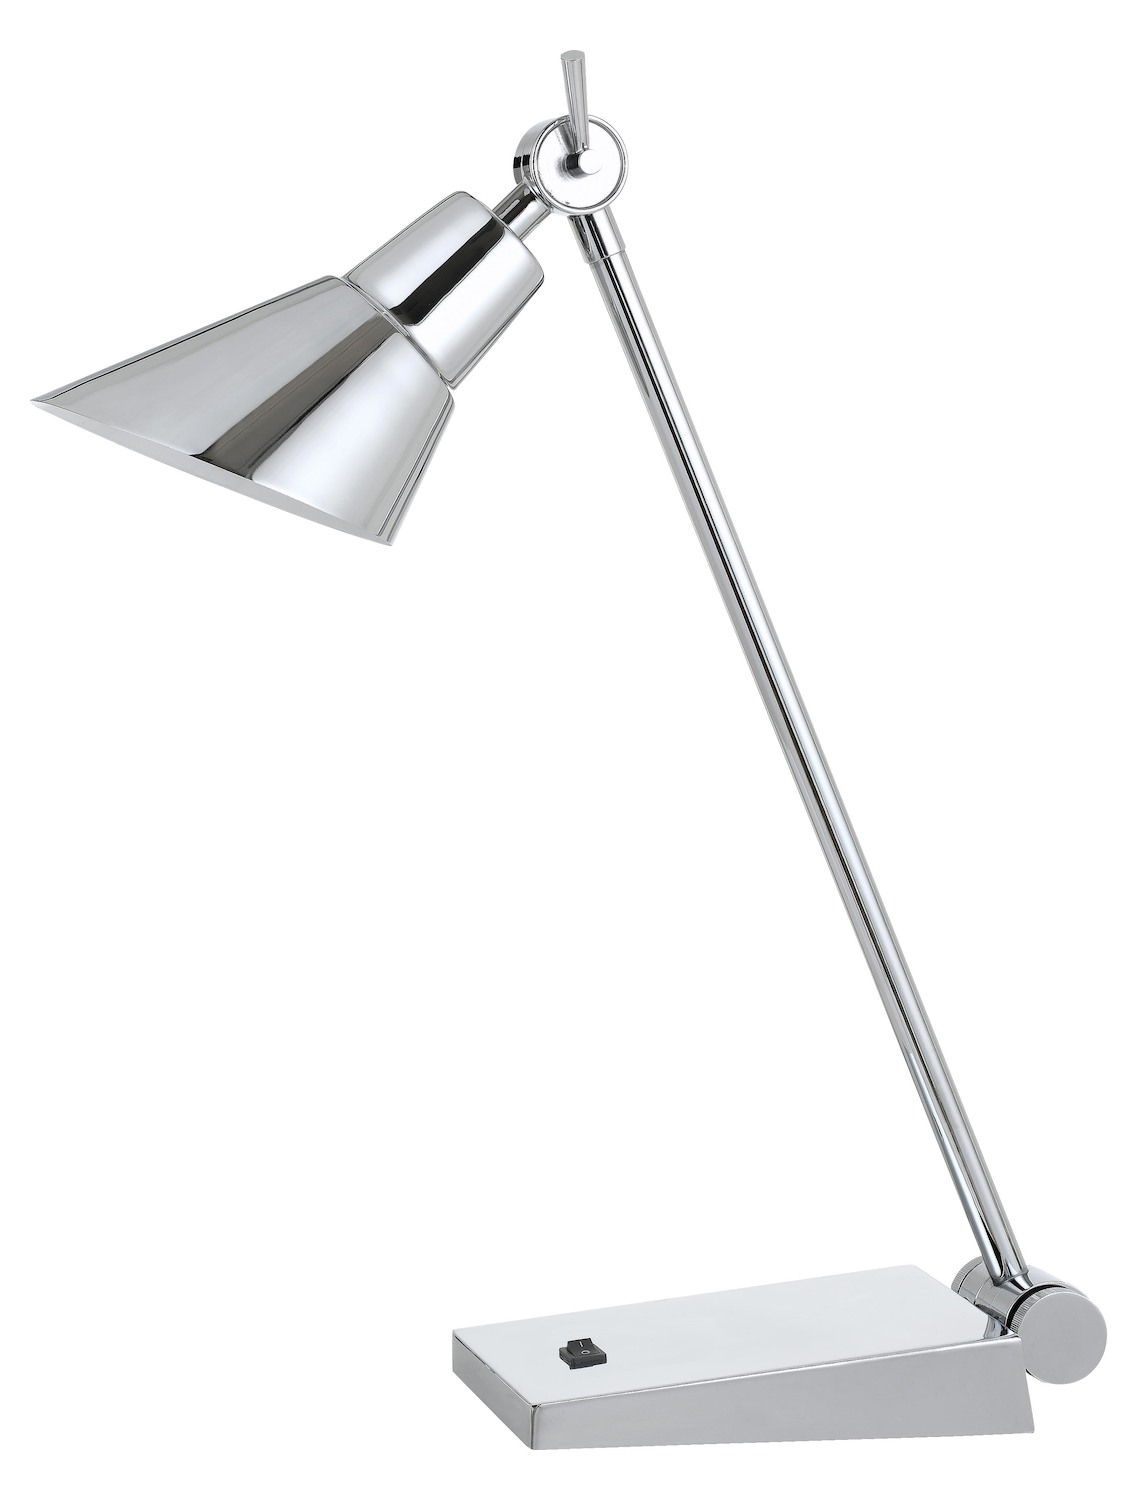 7W 450 Lumen 3000K Led Adjustable Metal Desk Lamp With Rocker Switch by